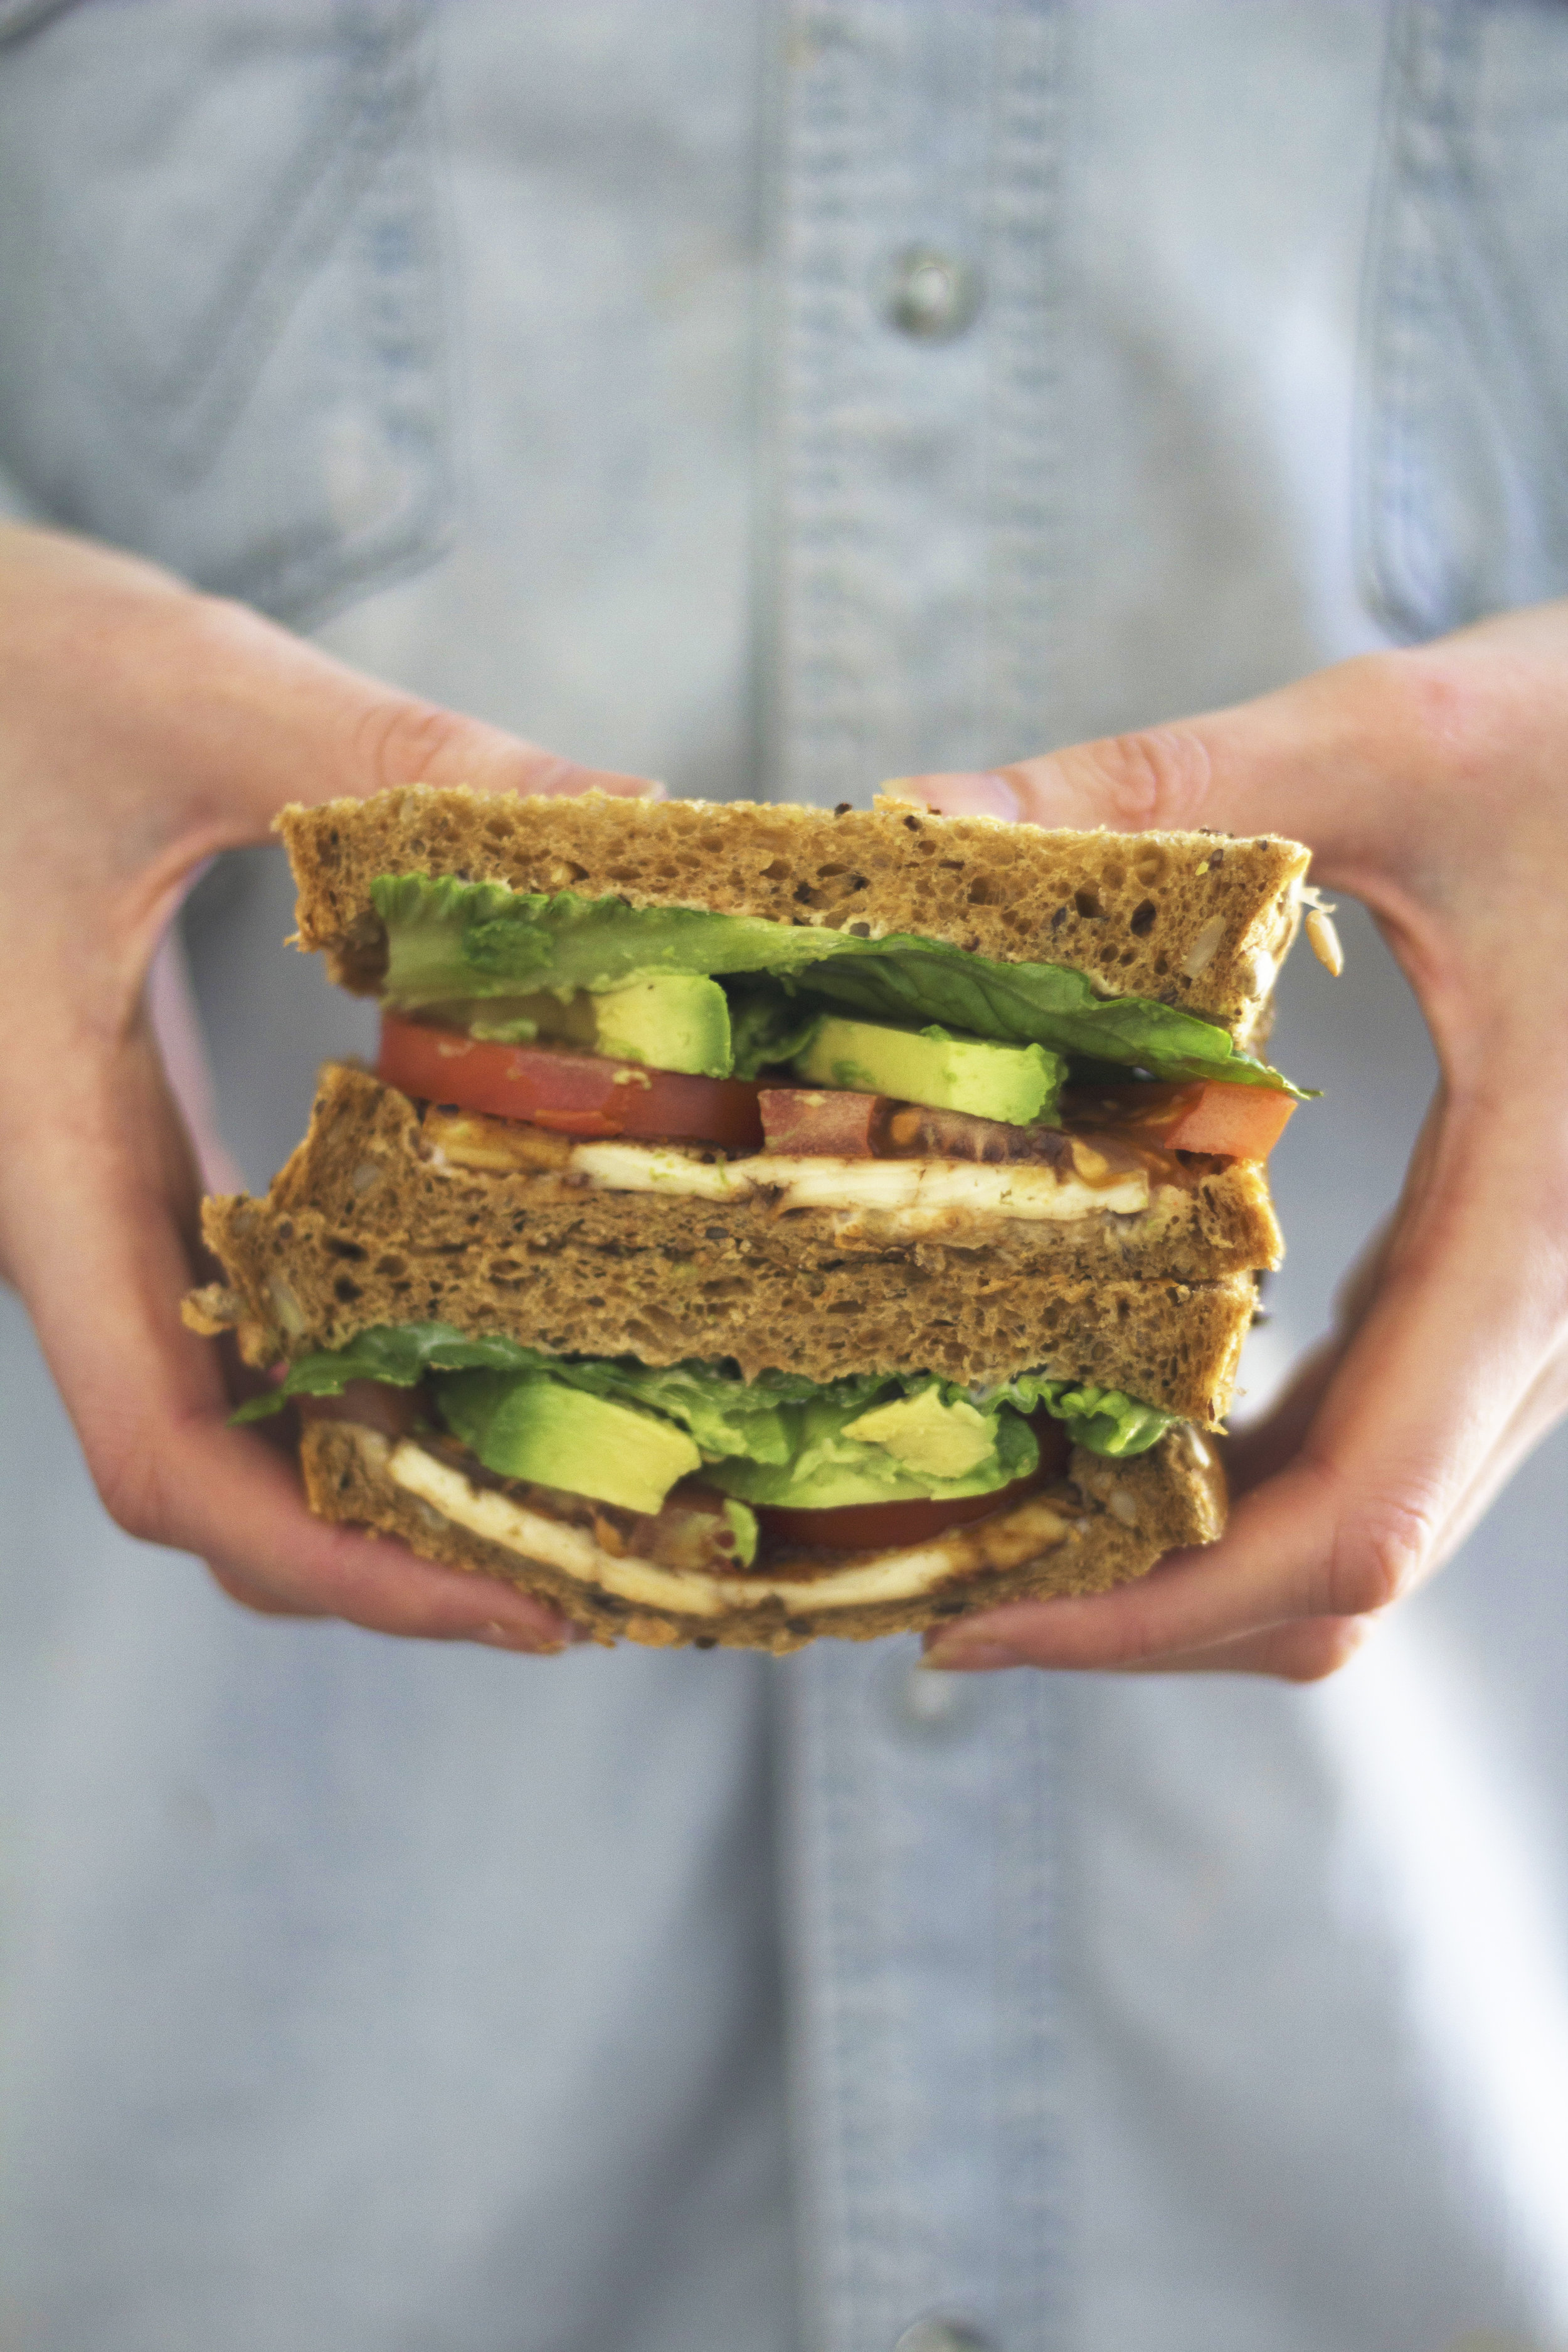 Forget BLT, try a TLT! Vegan, high in protein and simply delicious! - prep time5 mins  total time 25 mins  serves 2